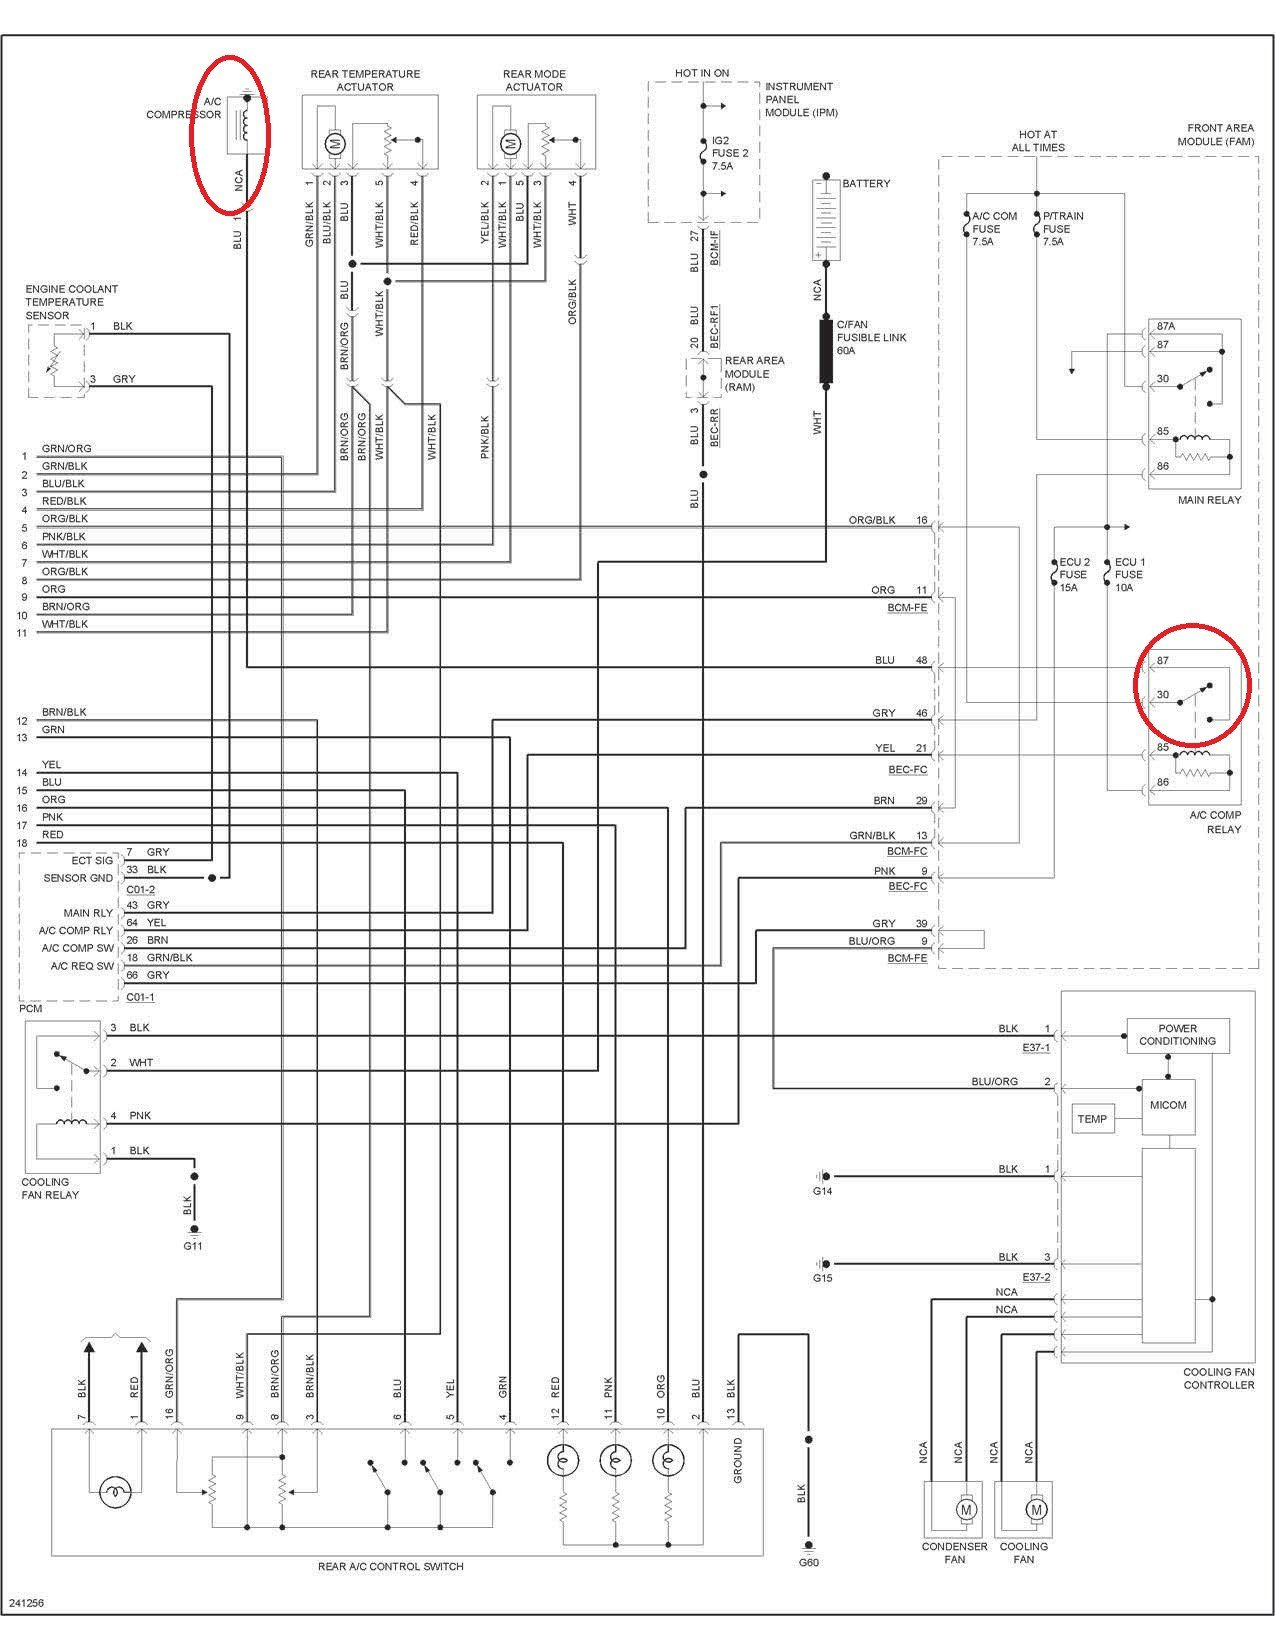 kia spectra air conditioning diagram 36 wiring diagram images wiring diagrams home support co 1999 Kia Sephia Fuse Box Diagram 2004 Kia Spectra Fuse Box Diagram